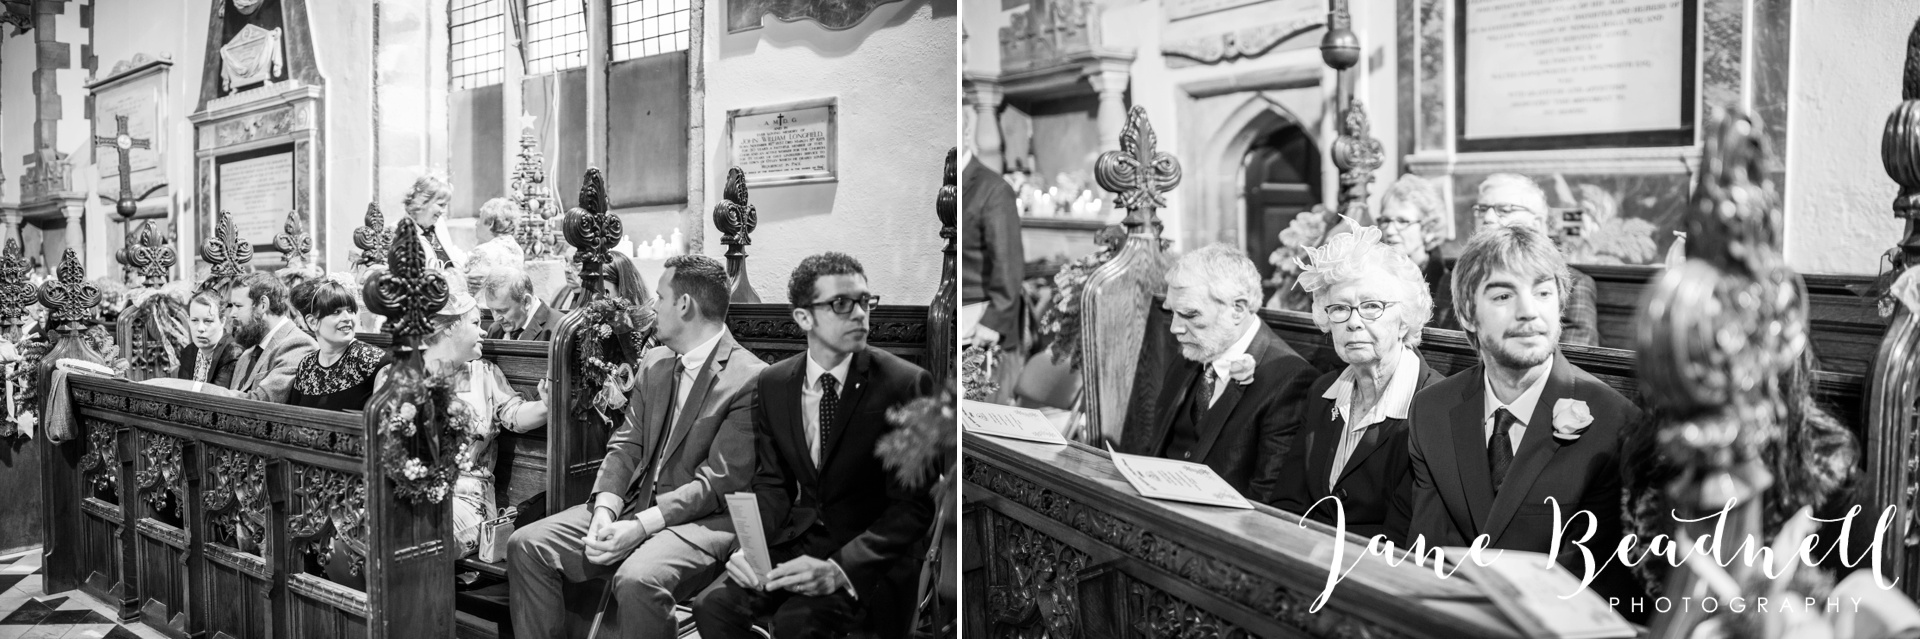 Otley Chevin Country Spa Hotel wedding Otley by Jane Beadnell Photography_0026